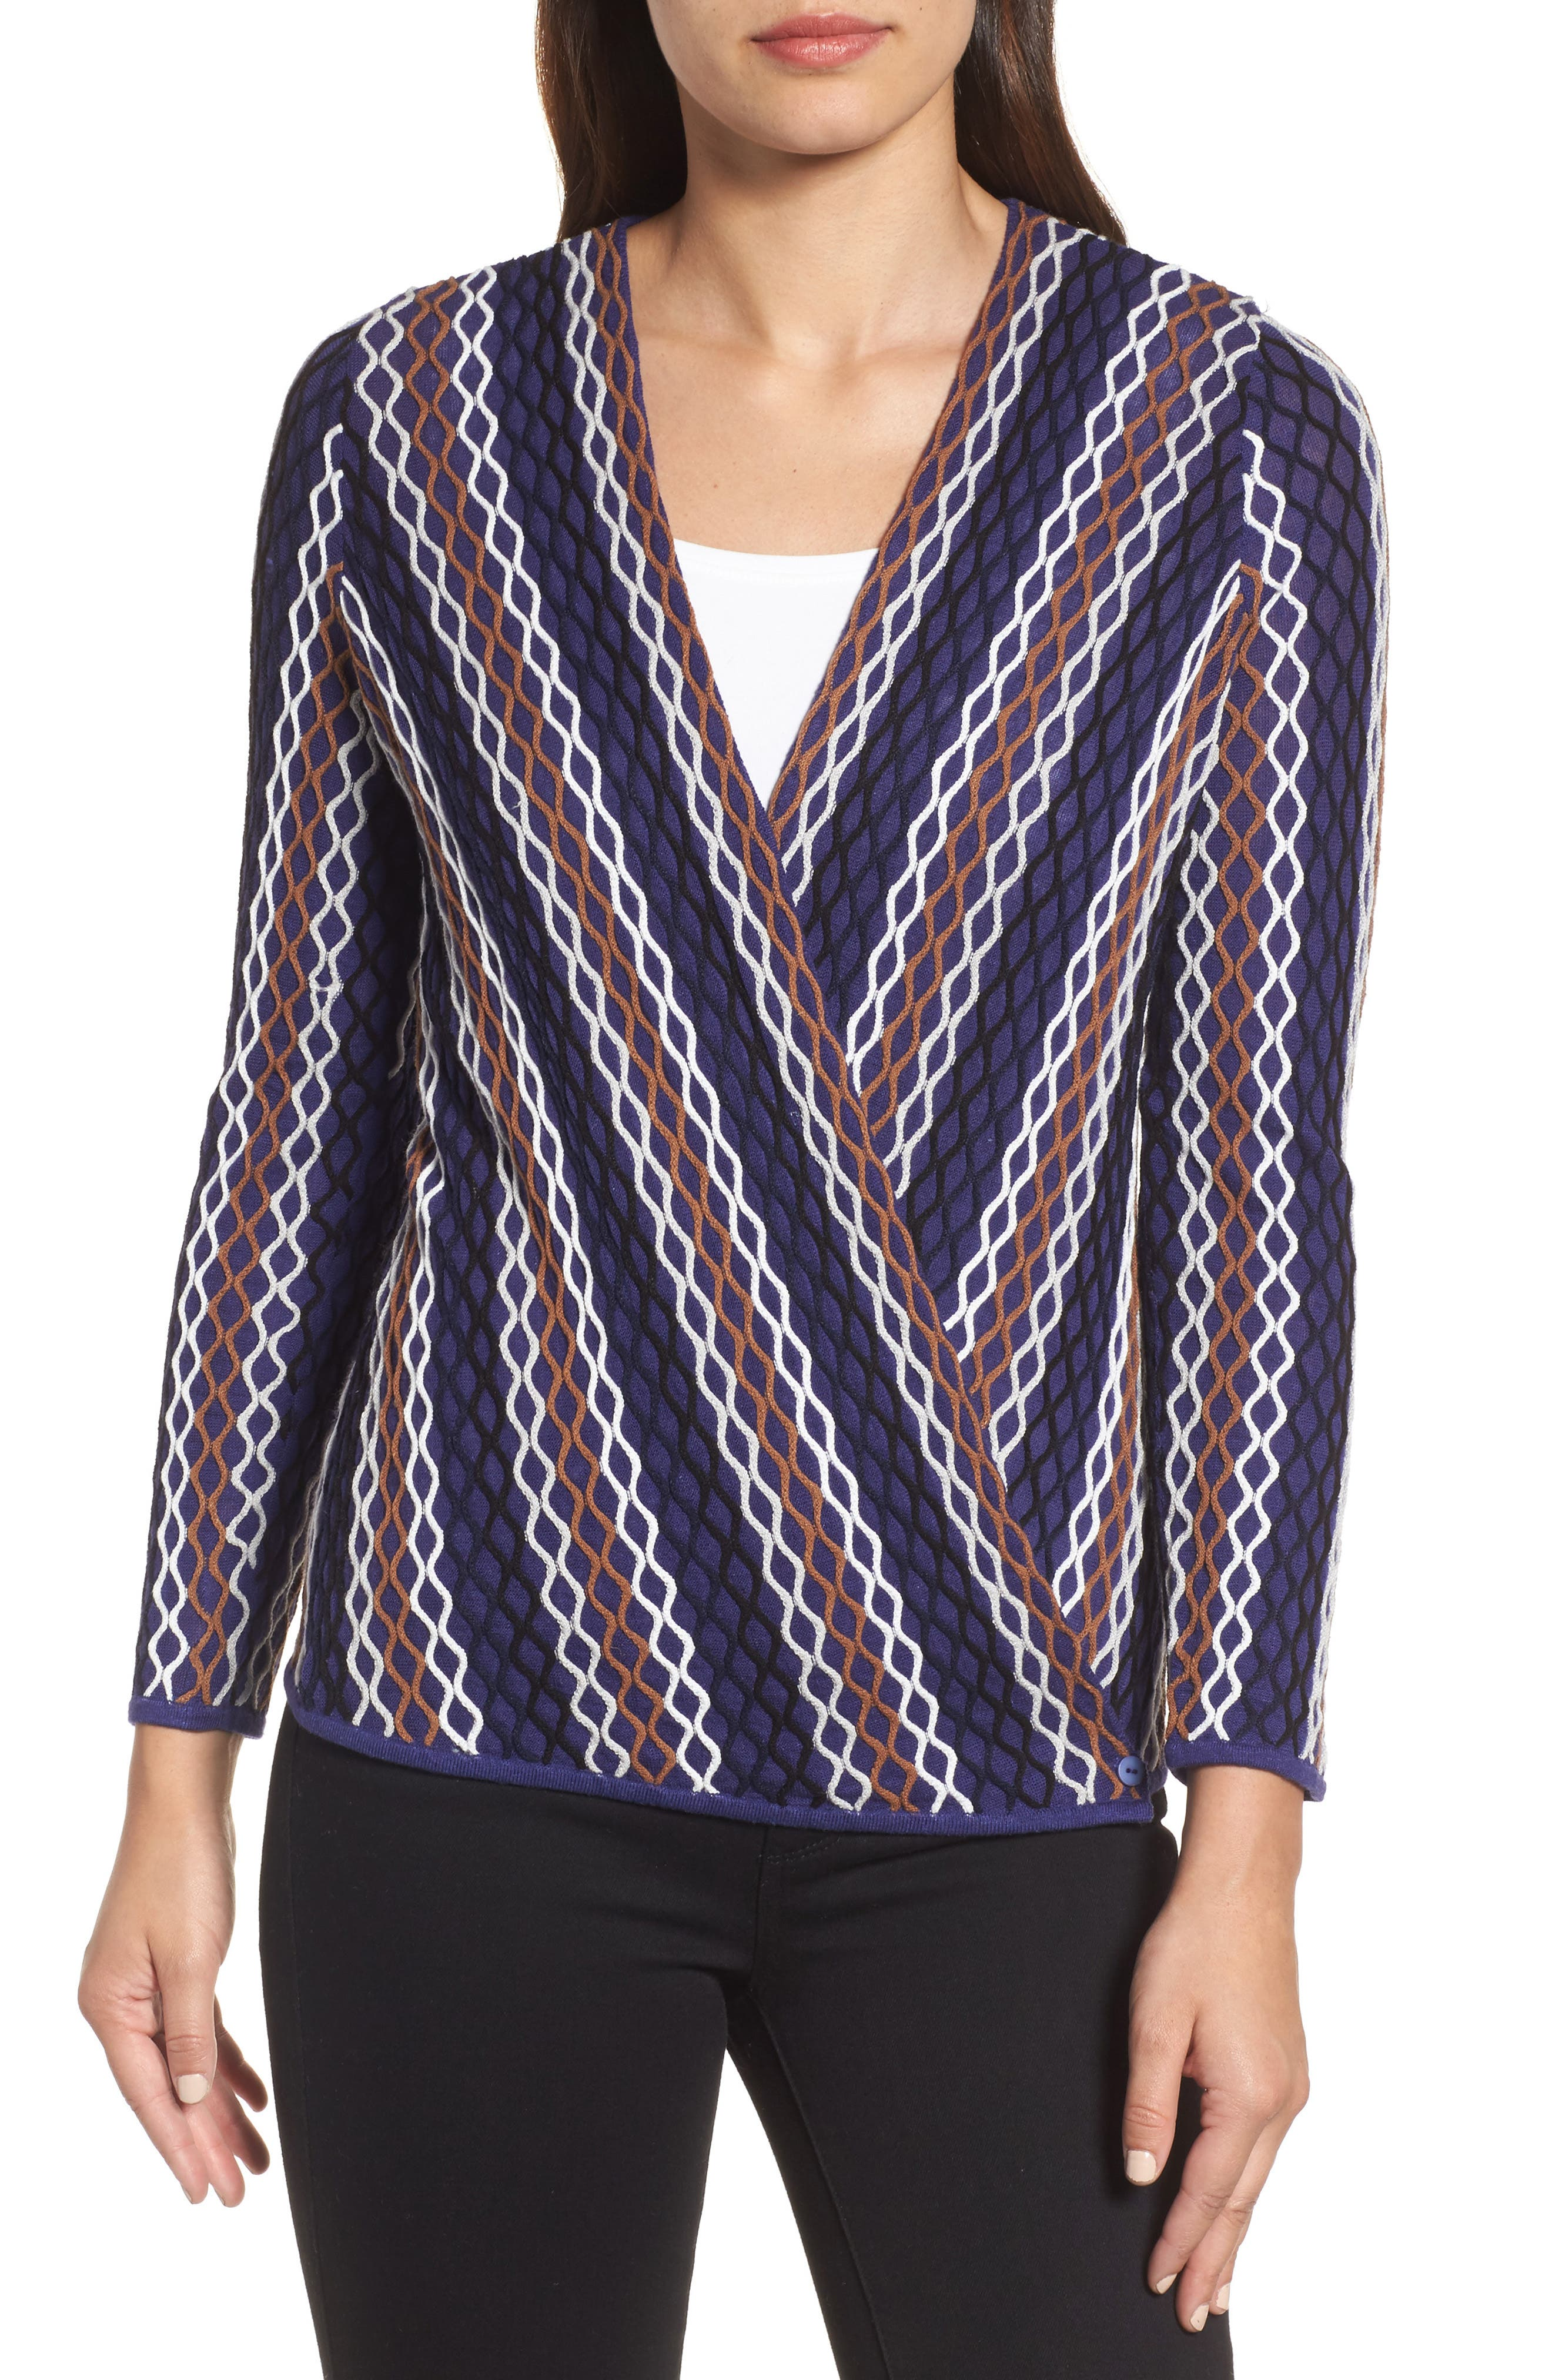 NIC+ ZOE Squiggled Up 4-Way Convertible Cardigan,                             Alternate thumbnail 4, color,                             Blue Multi